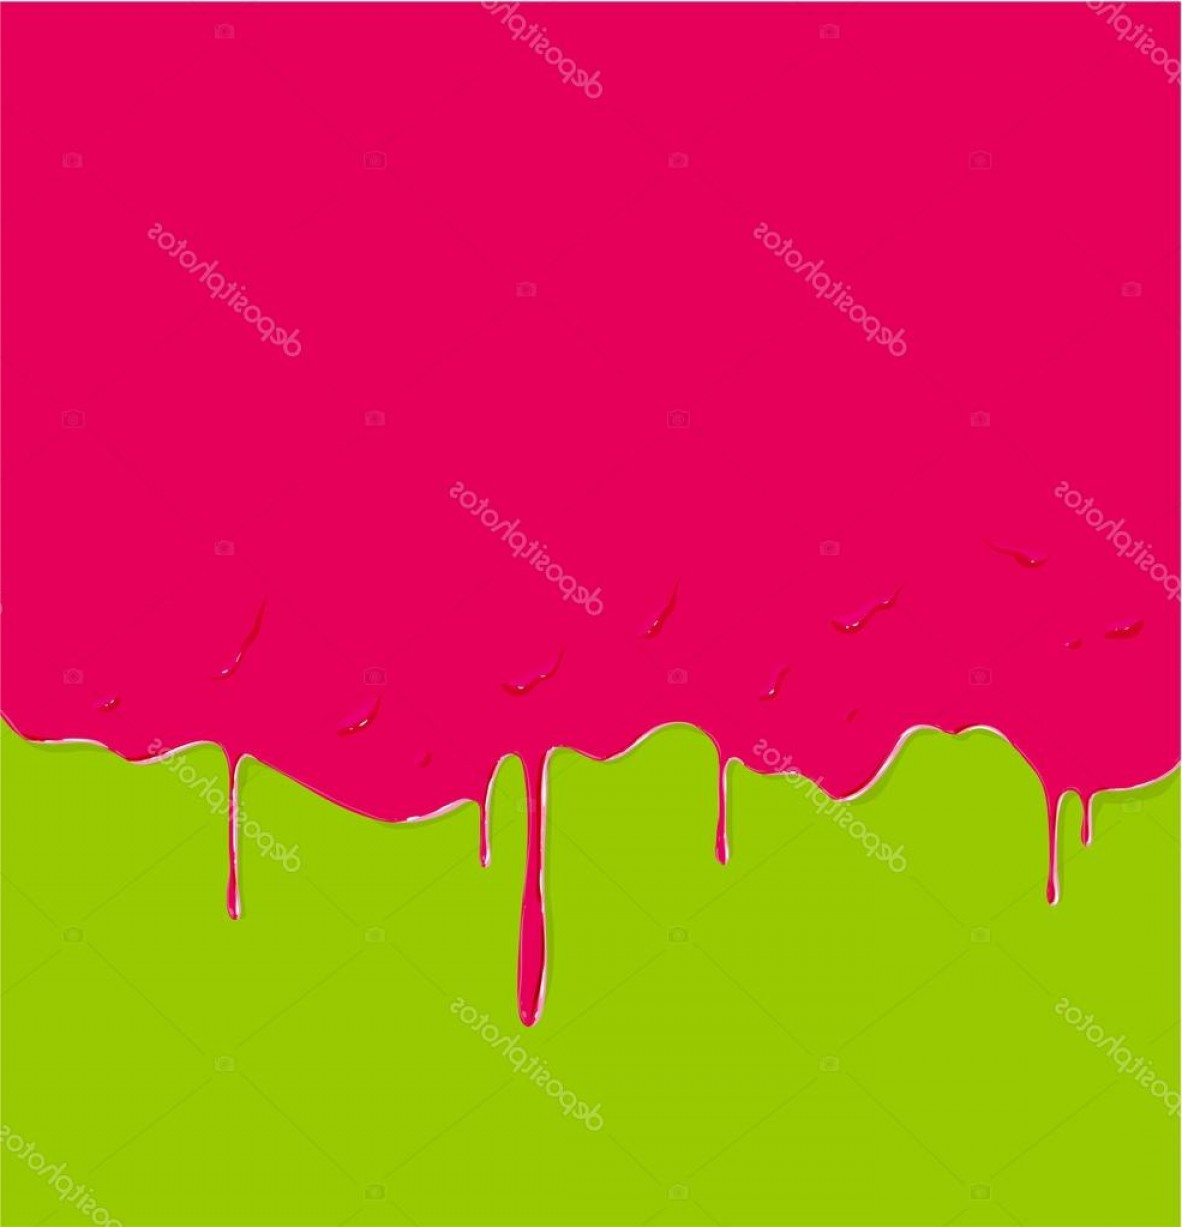 Dripping Paint Vector Illustration: Stock Illustration Dripping Paint Background Vector Illustration